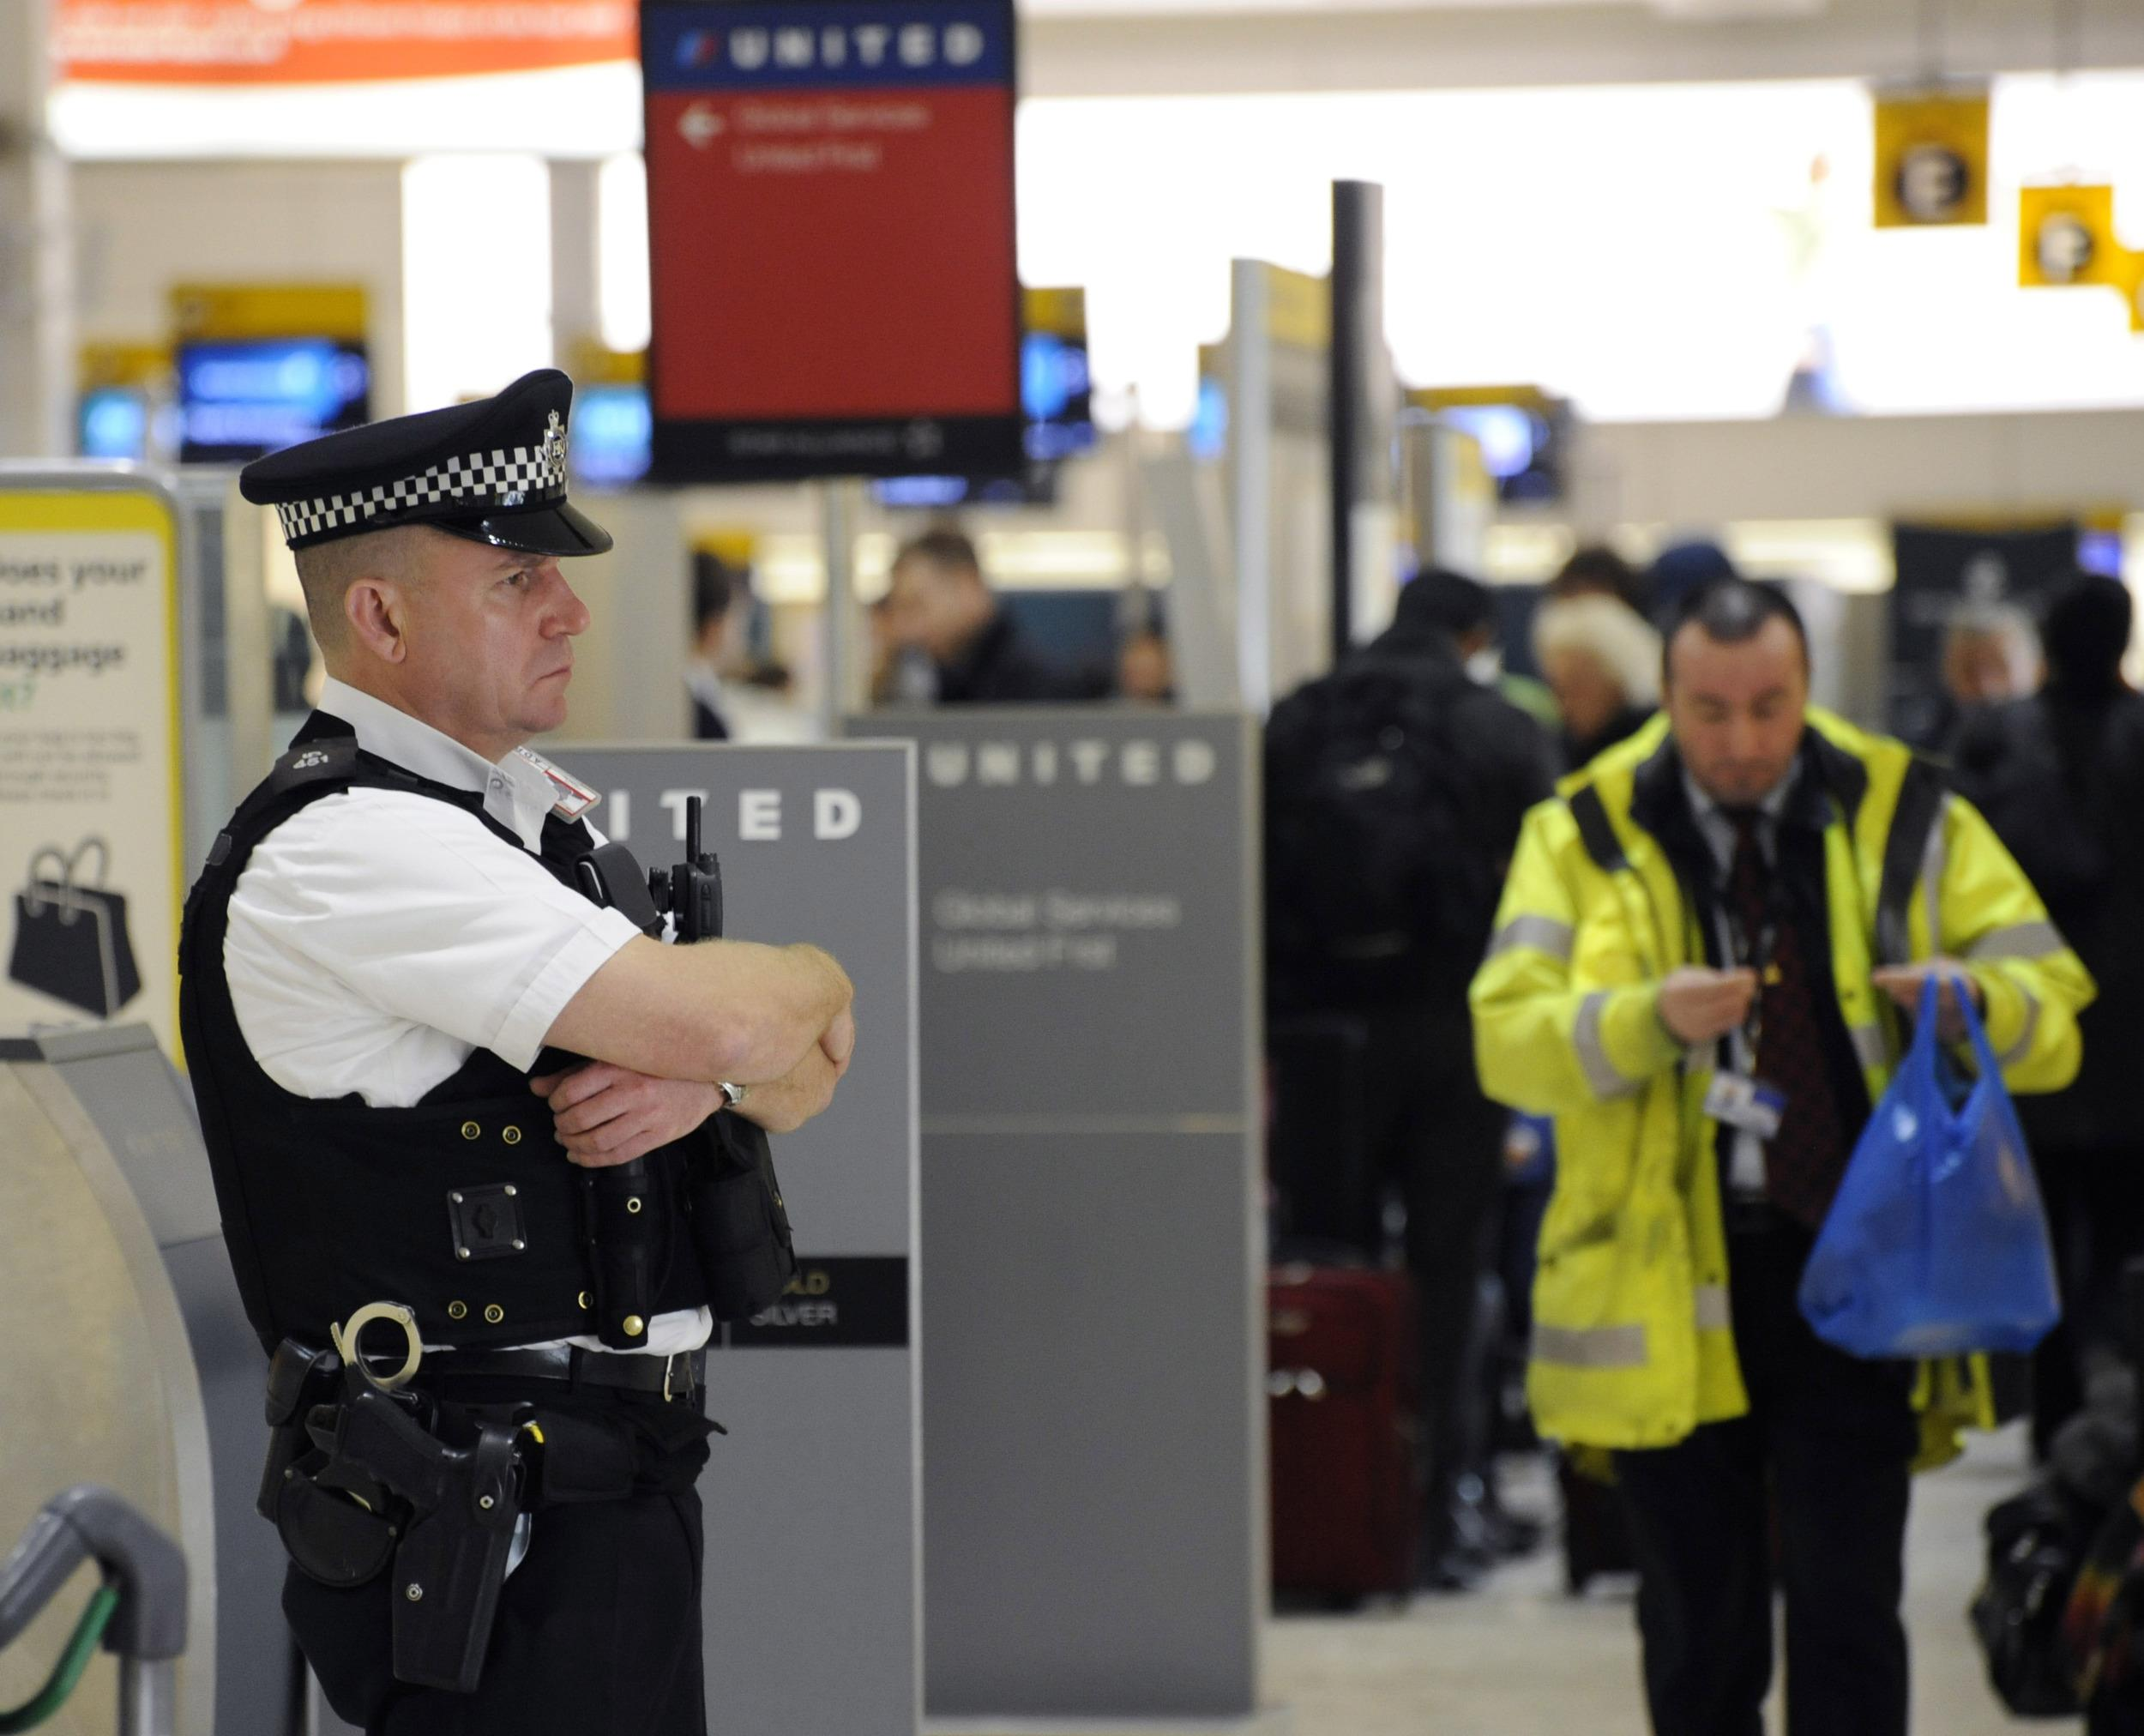 Image: Security at Heathrow